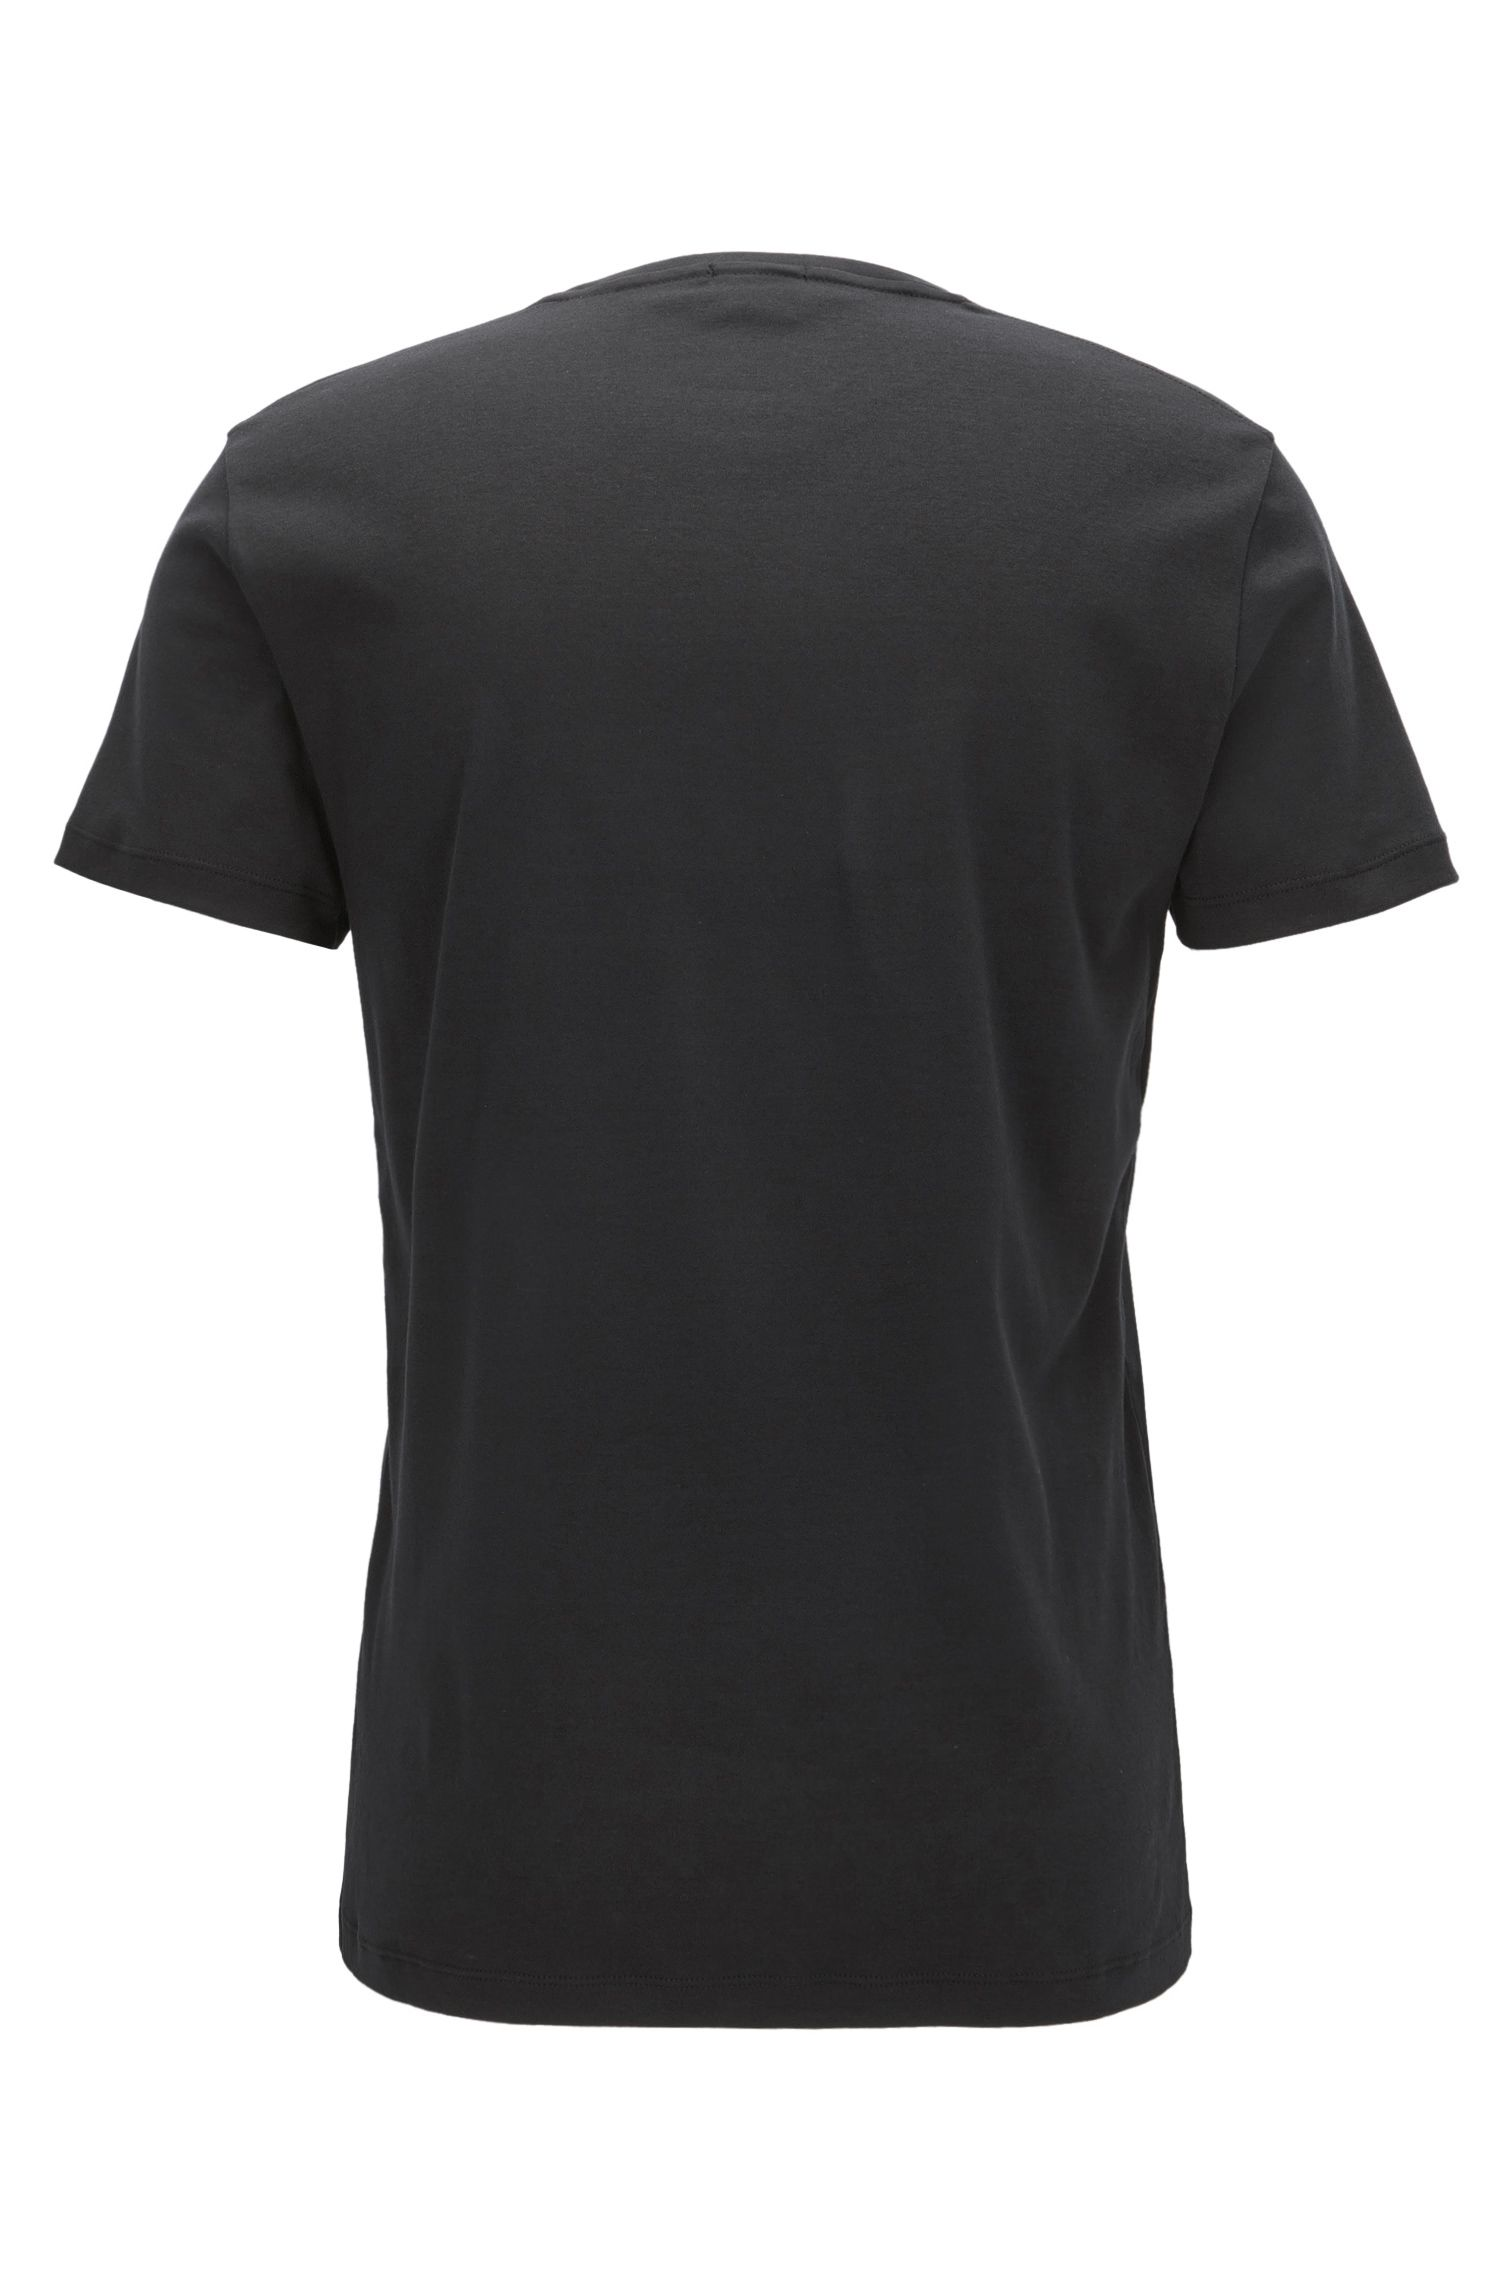 T-shirt Slim Fit en coton avec logo finition velours